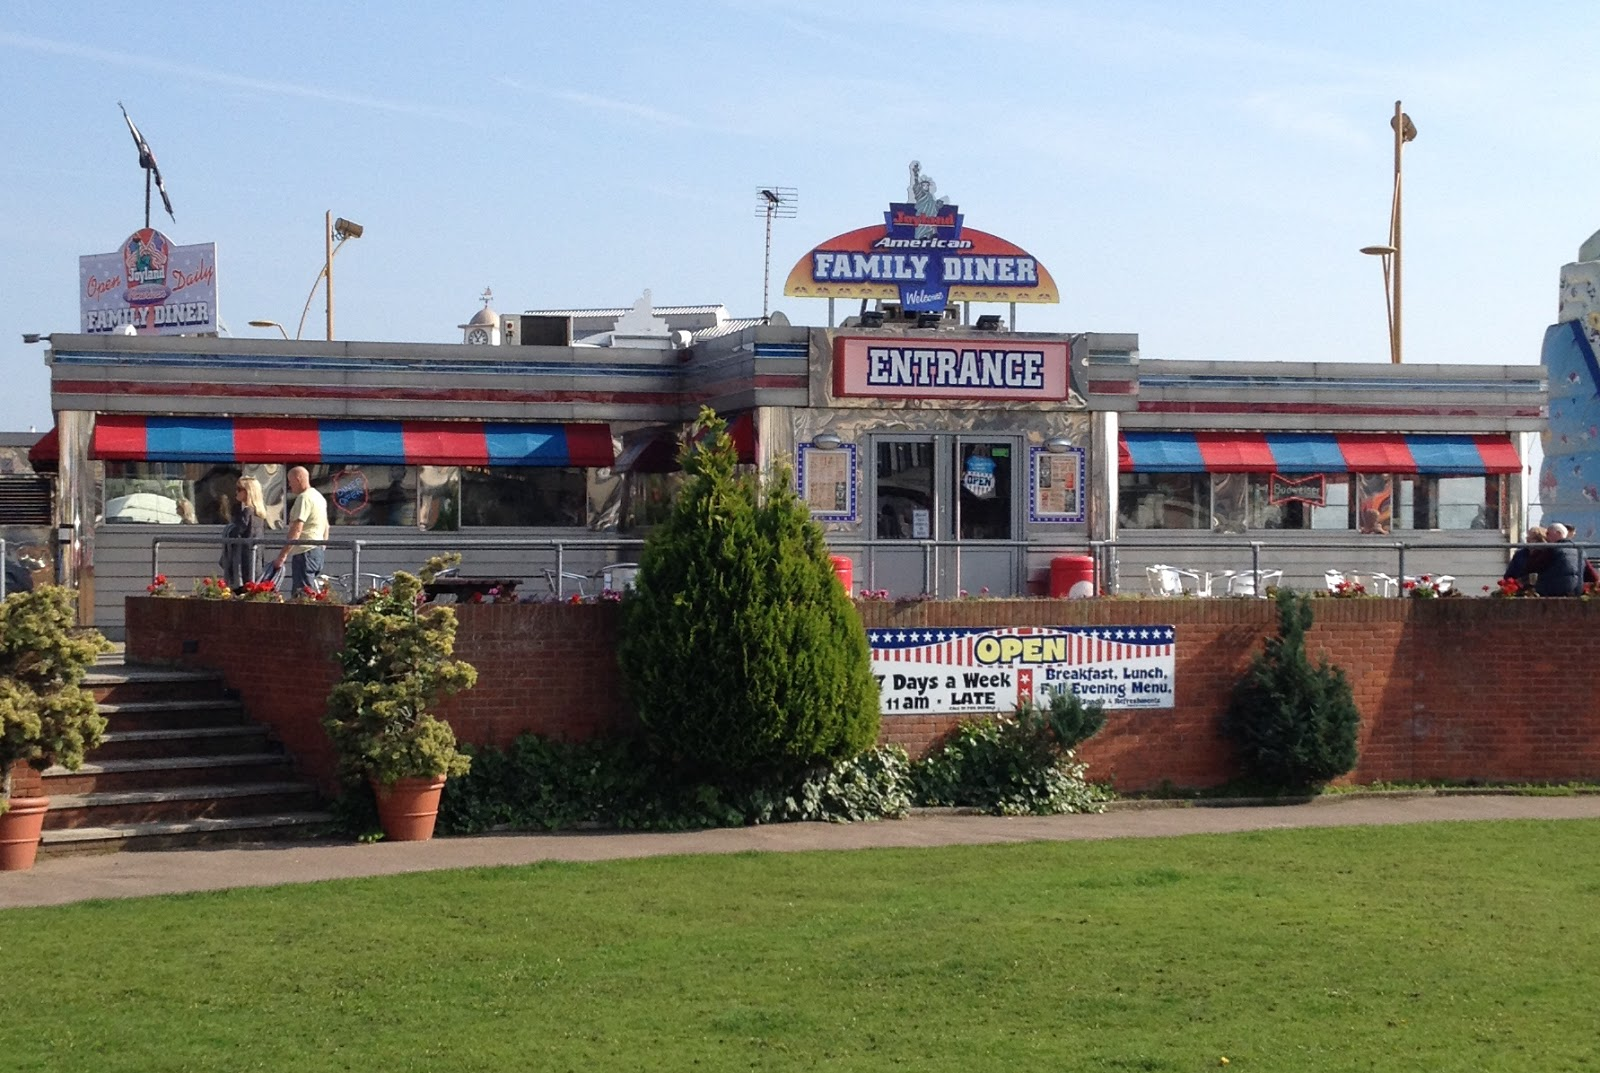 The fry up inspector joyland american family diner for Family diner